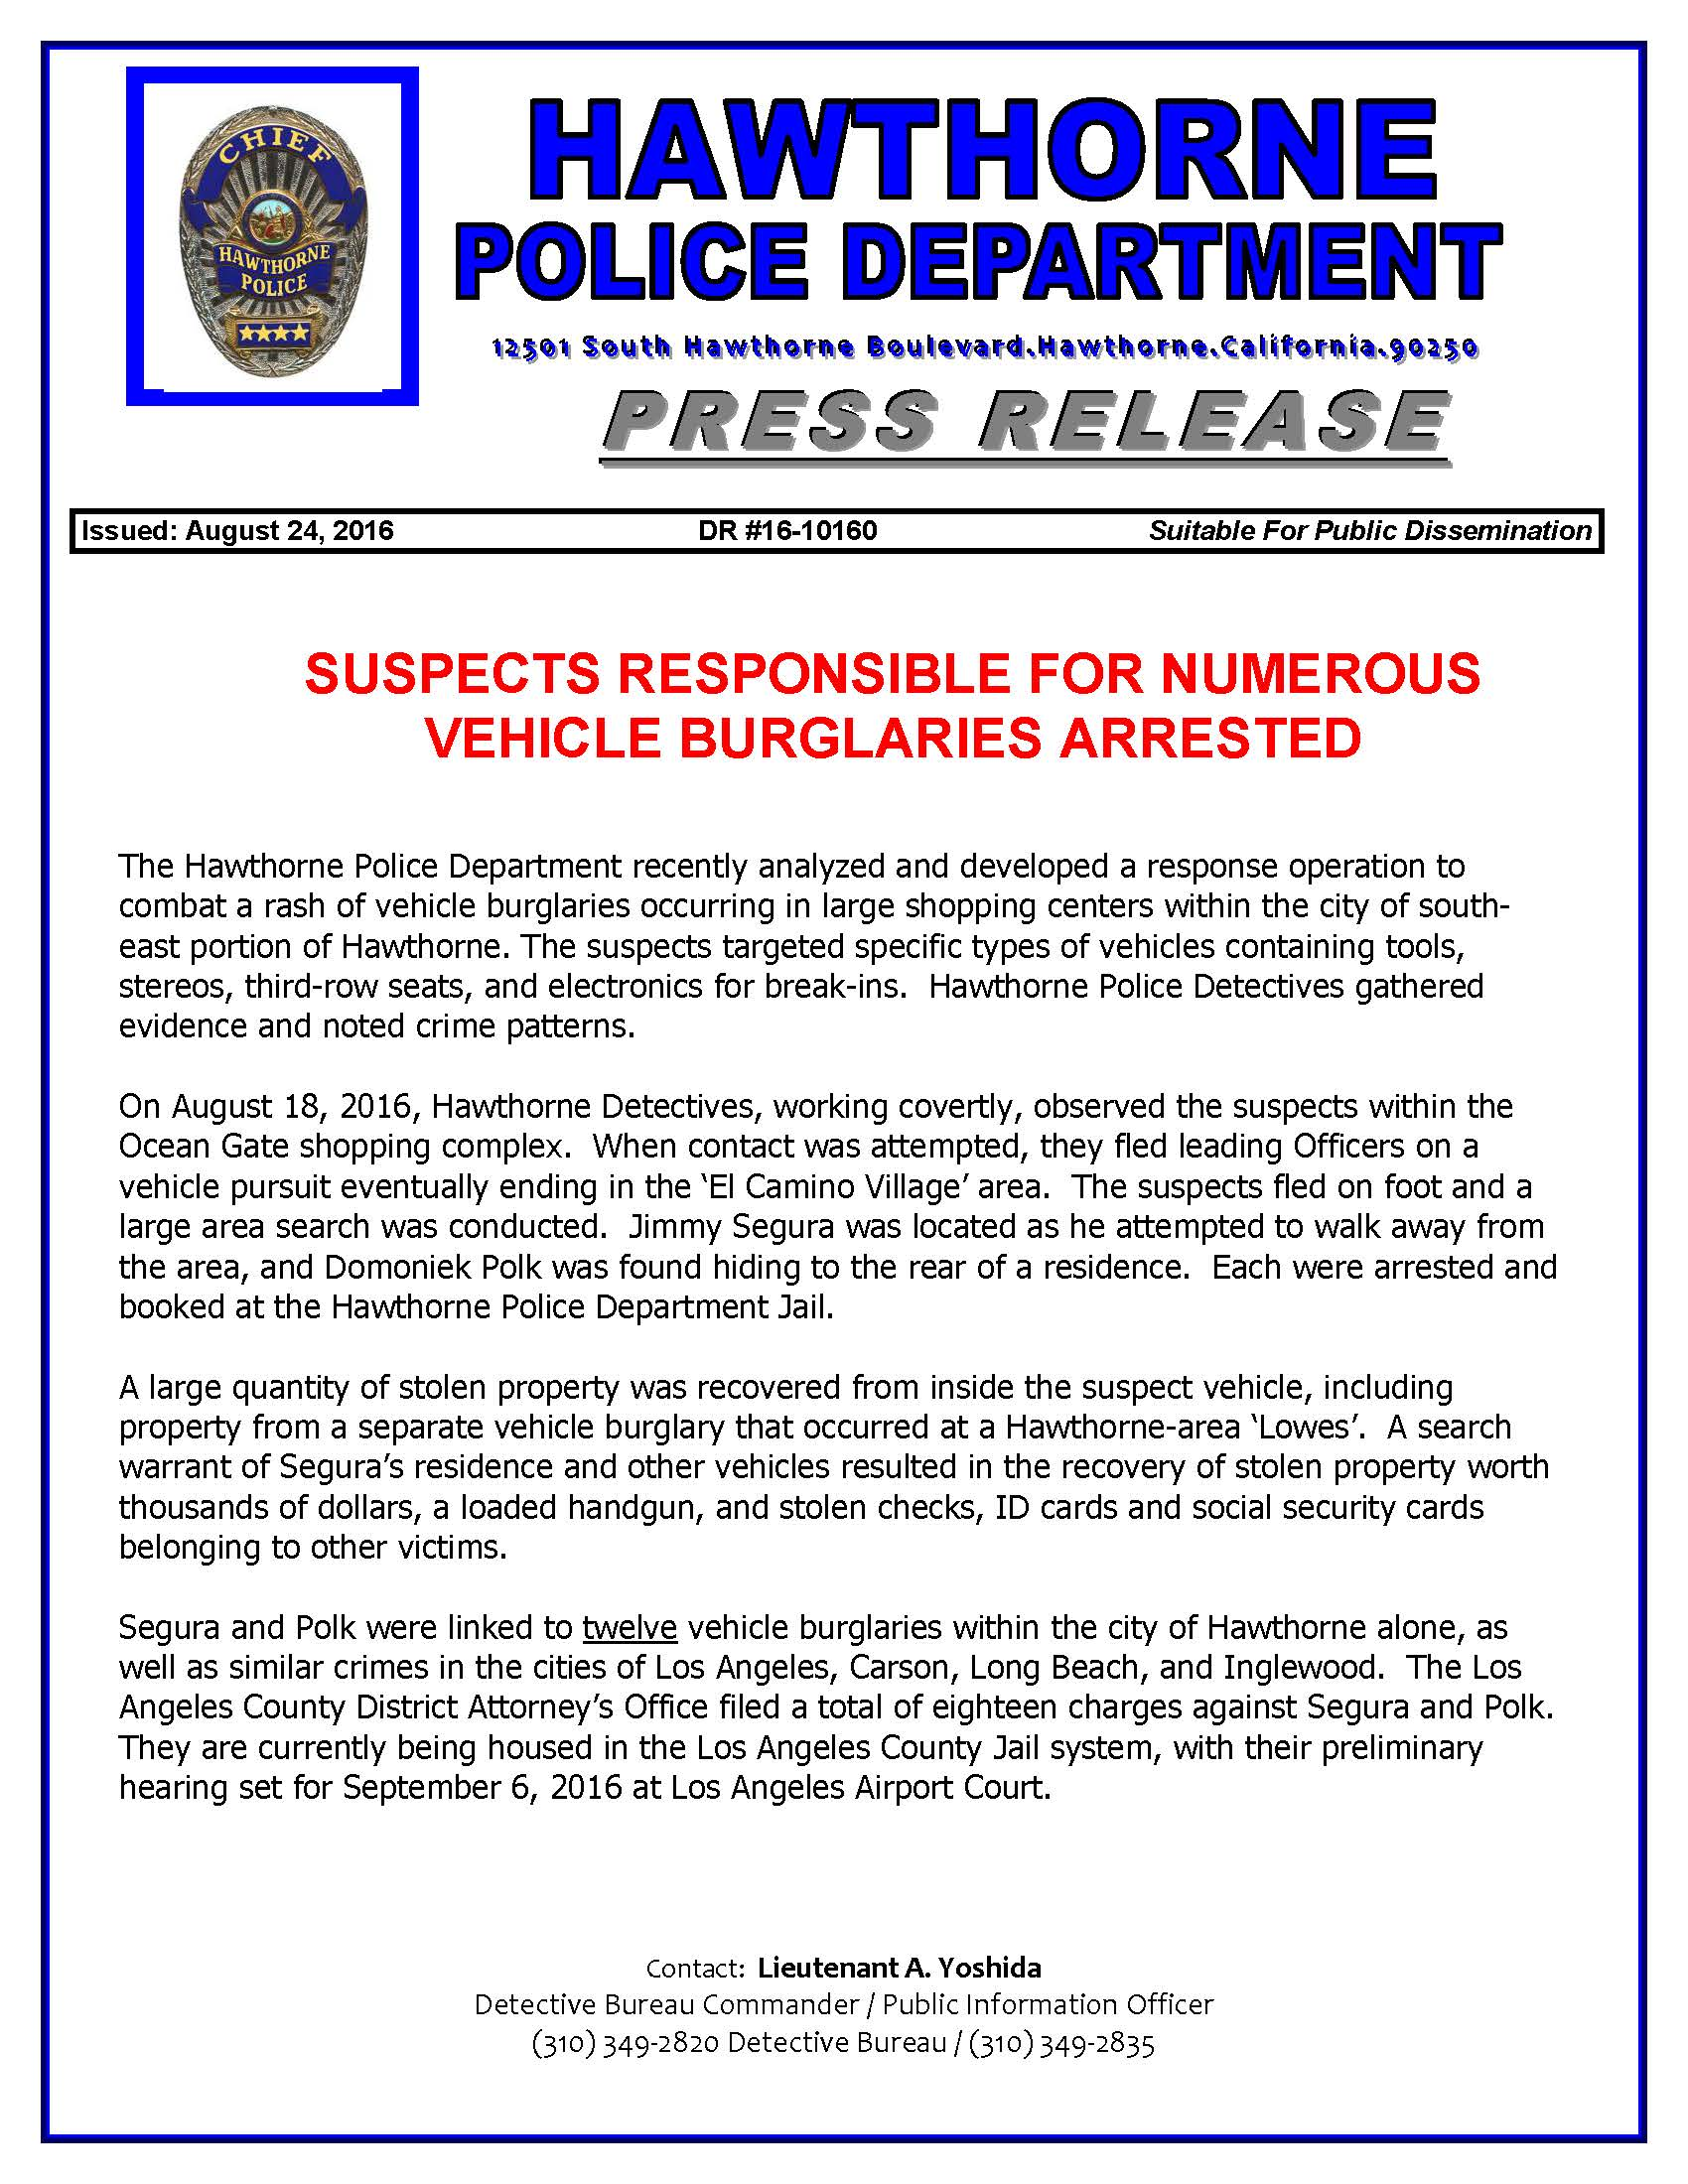 Suspects Responsible For Numerous Vehicle Burglaries Arrested